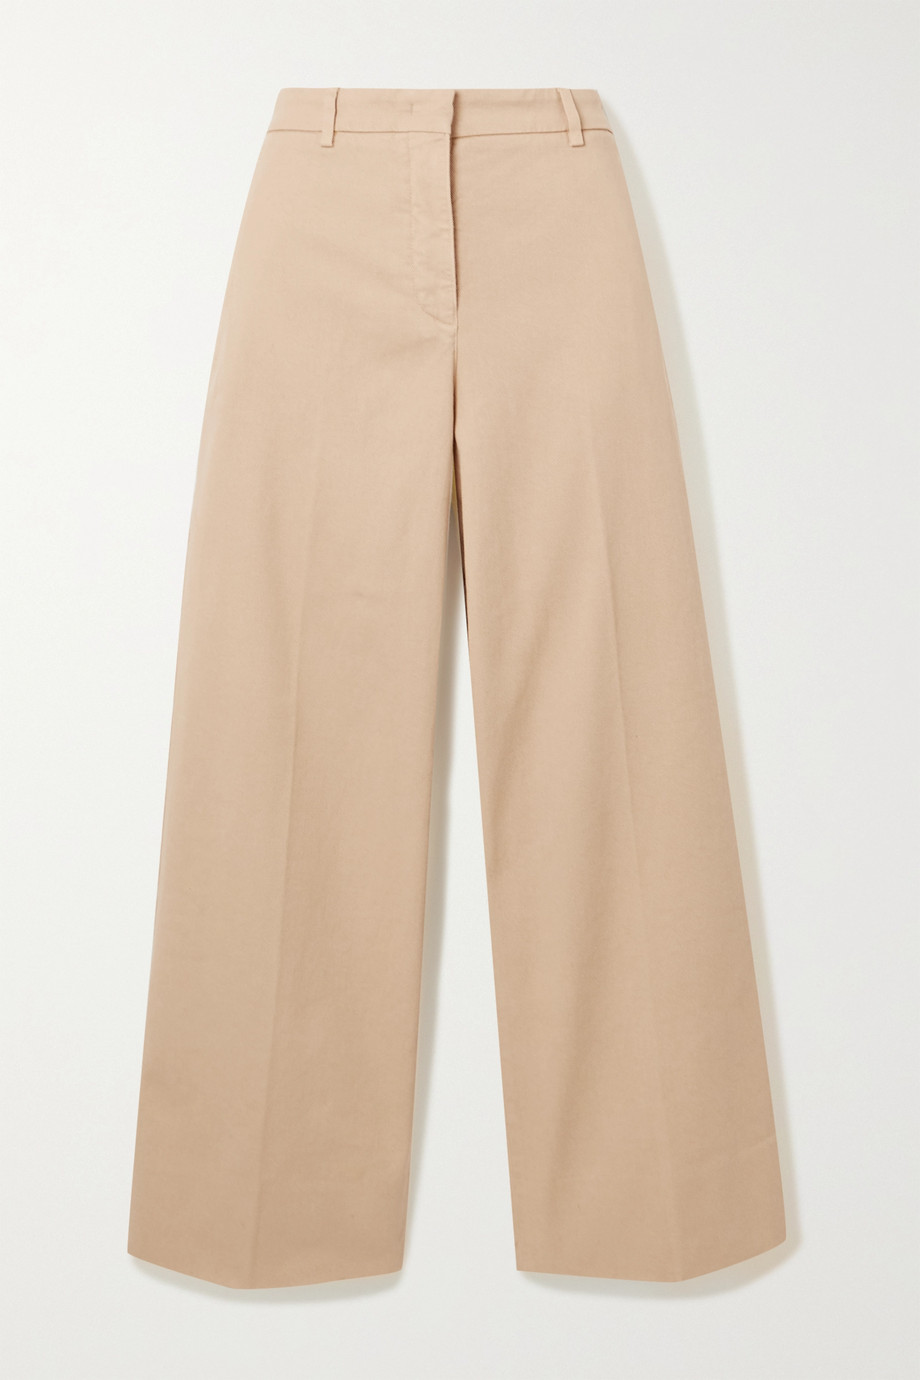 Loro Piana Garry cotton-blend twill wide-leg pants